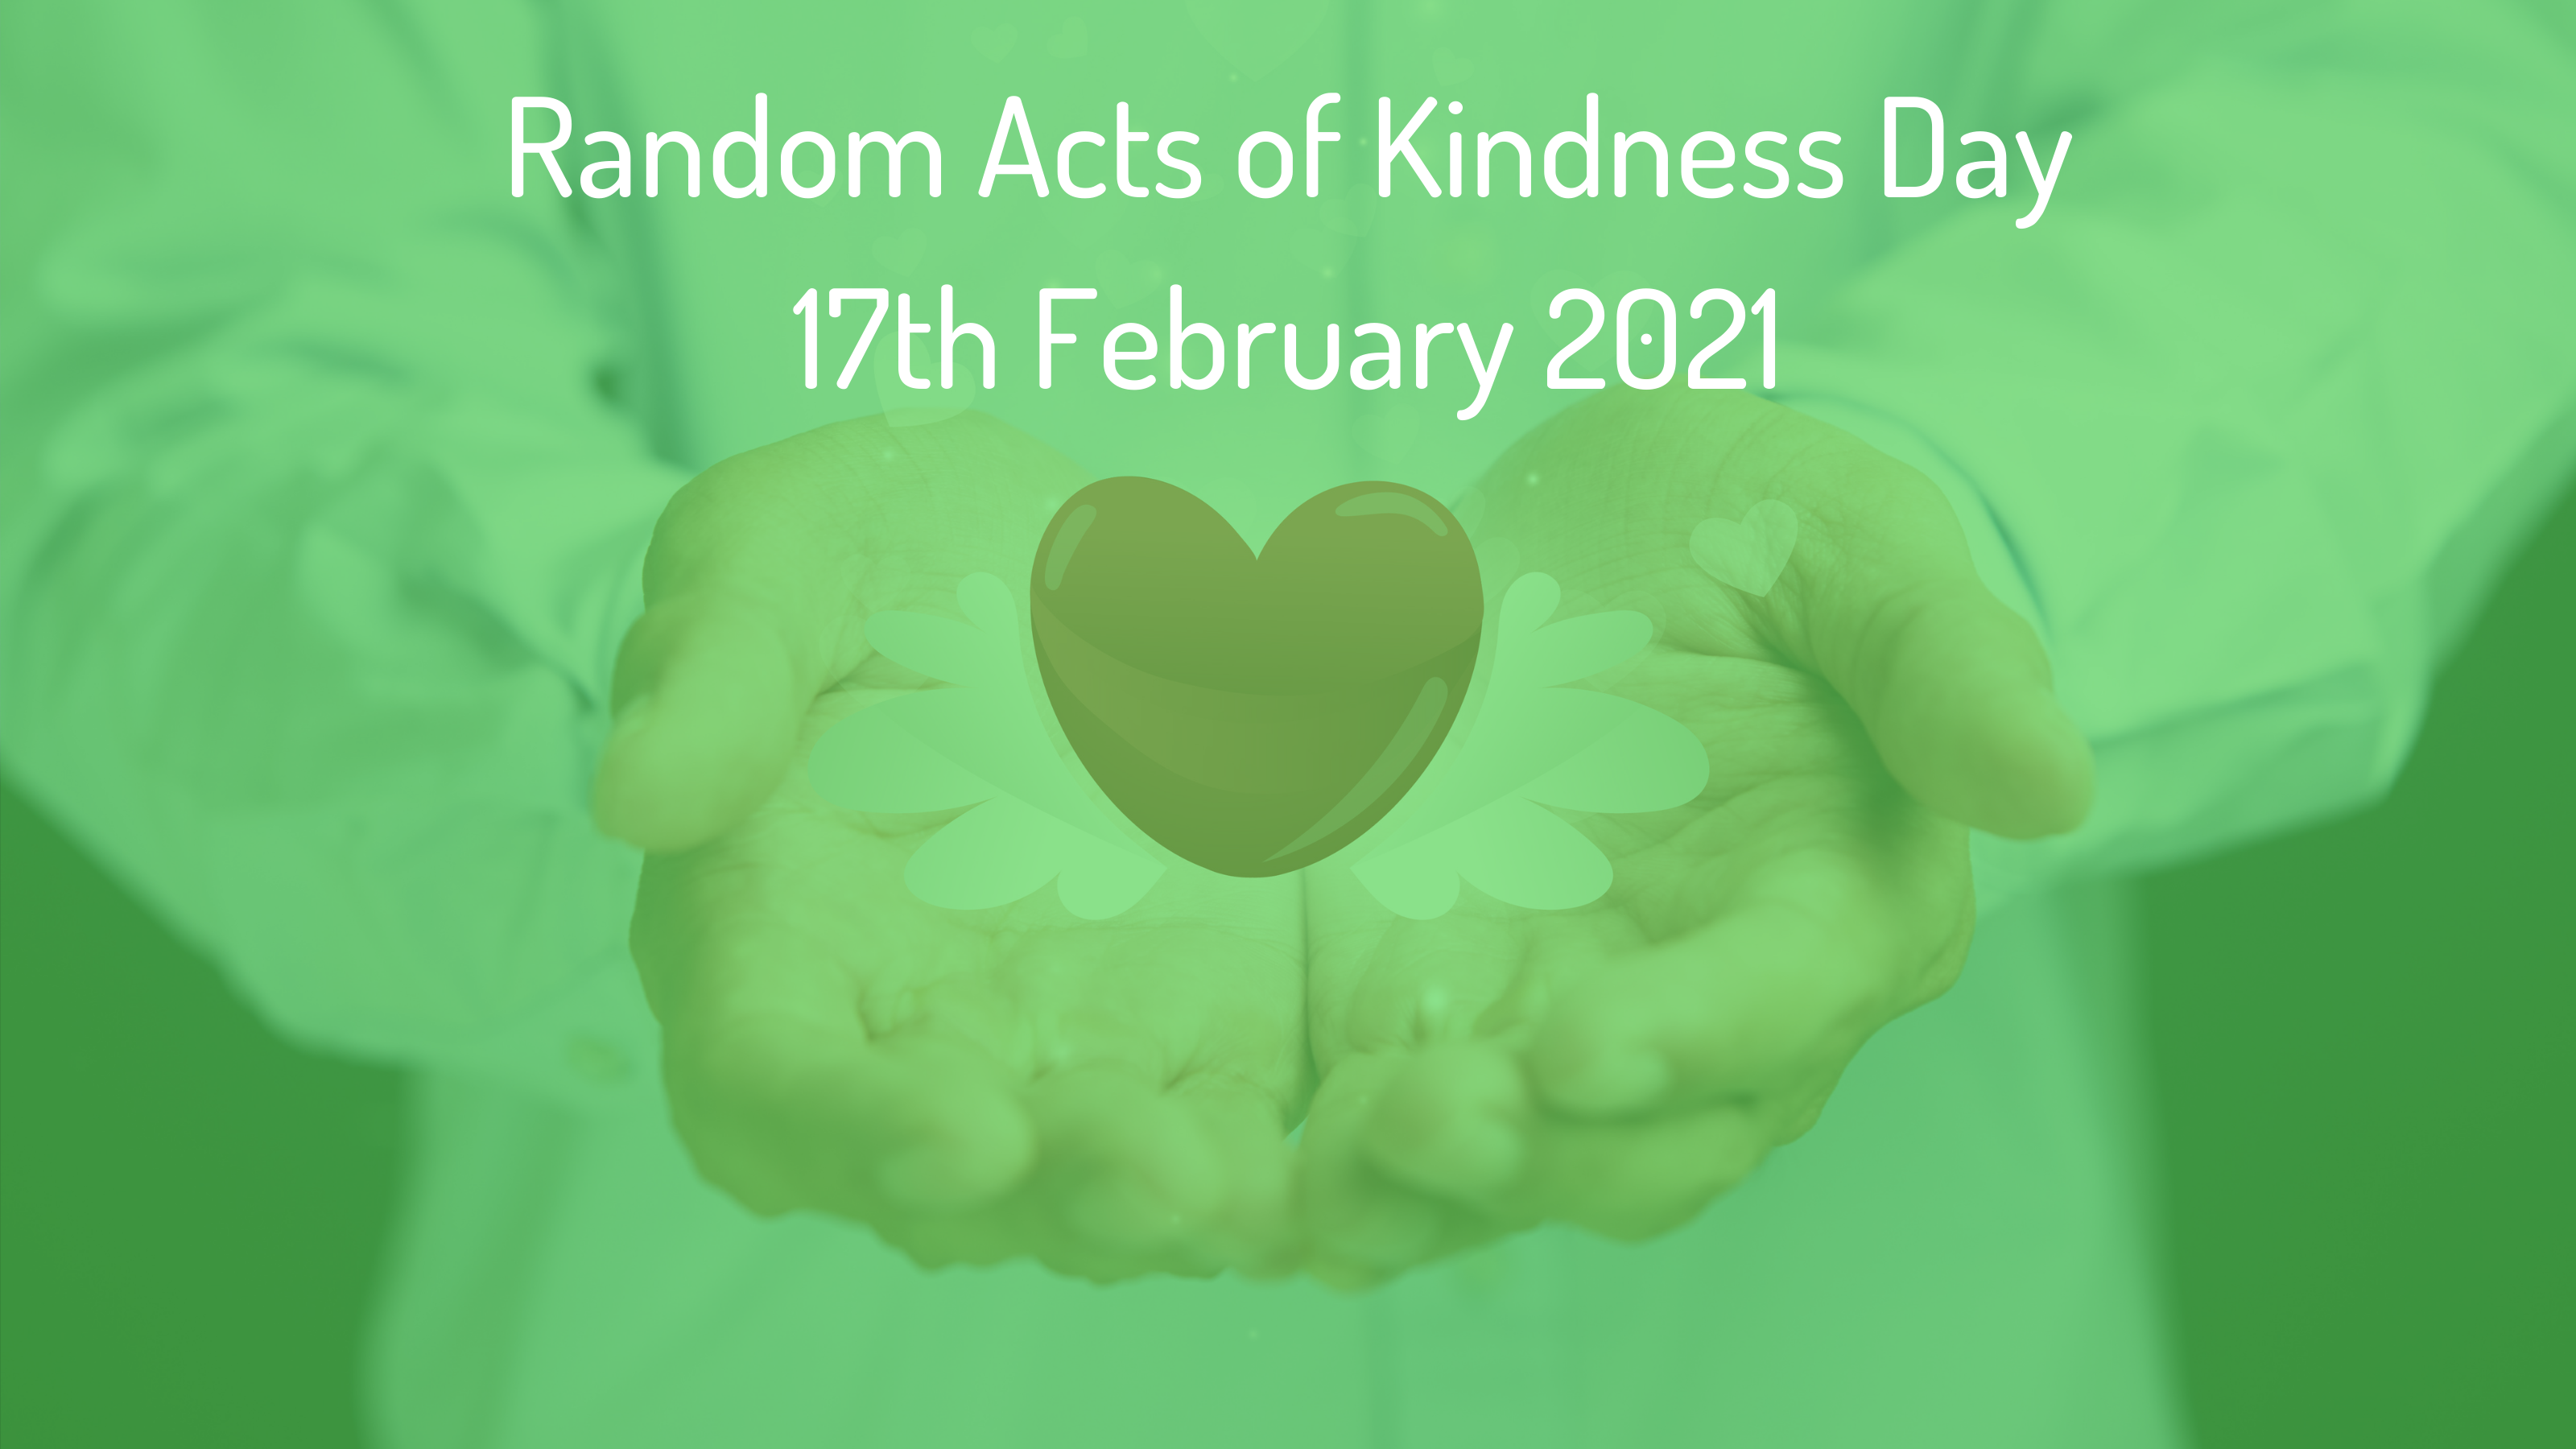 Random Acts of Kindness Day 17th February 2021